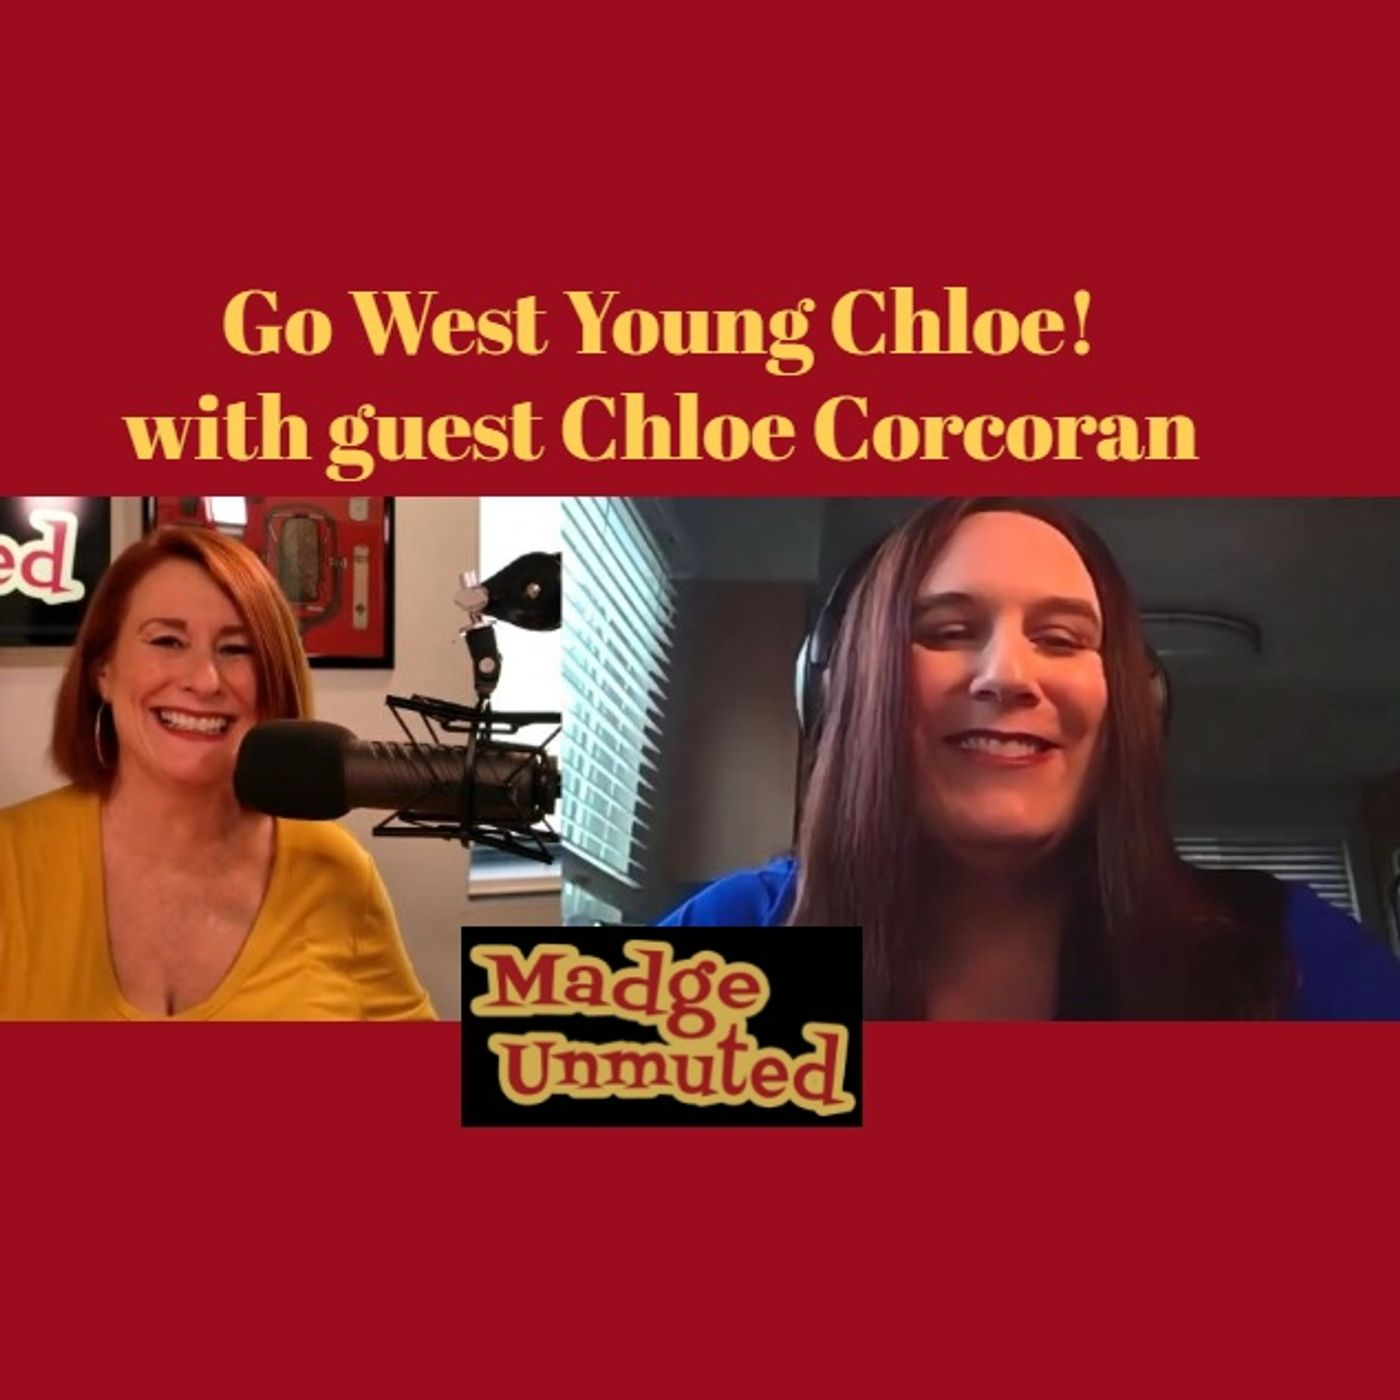 Go West Young Chloe! With Guest Chloe Corcoran